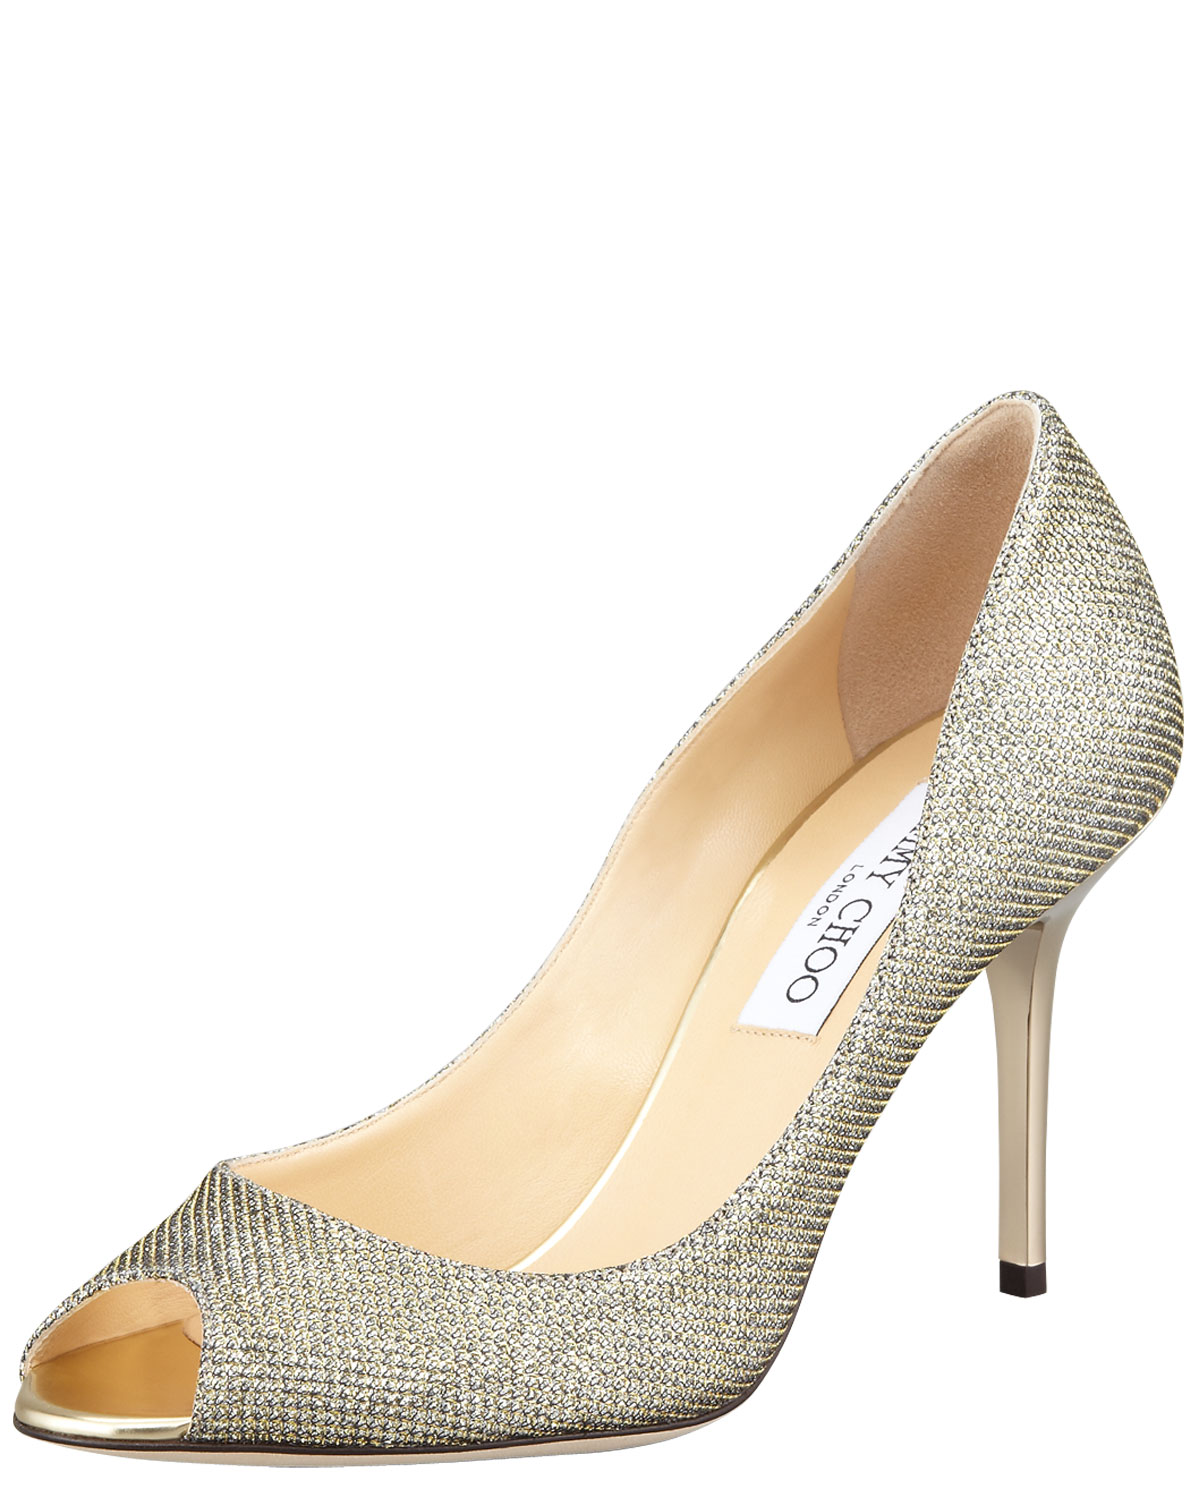 f366b146d Jimmy Choo Evelyn Peep-Toe Glitter Pumps, Light Bronze | Neiman Marcus